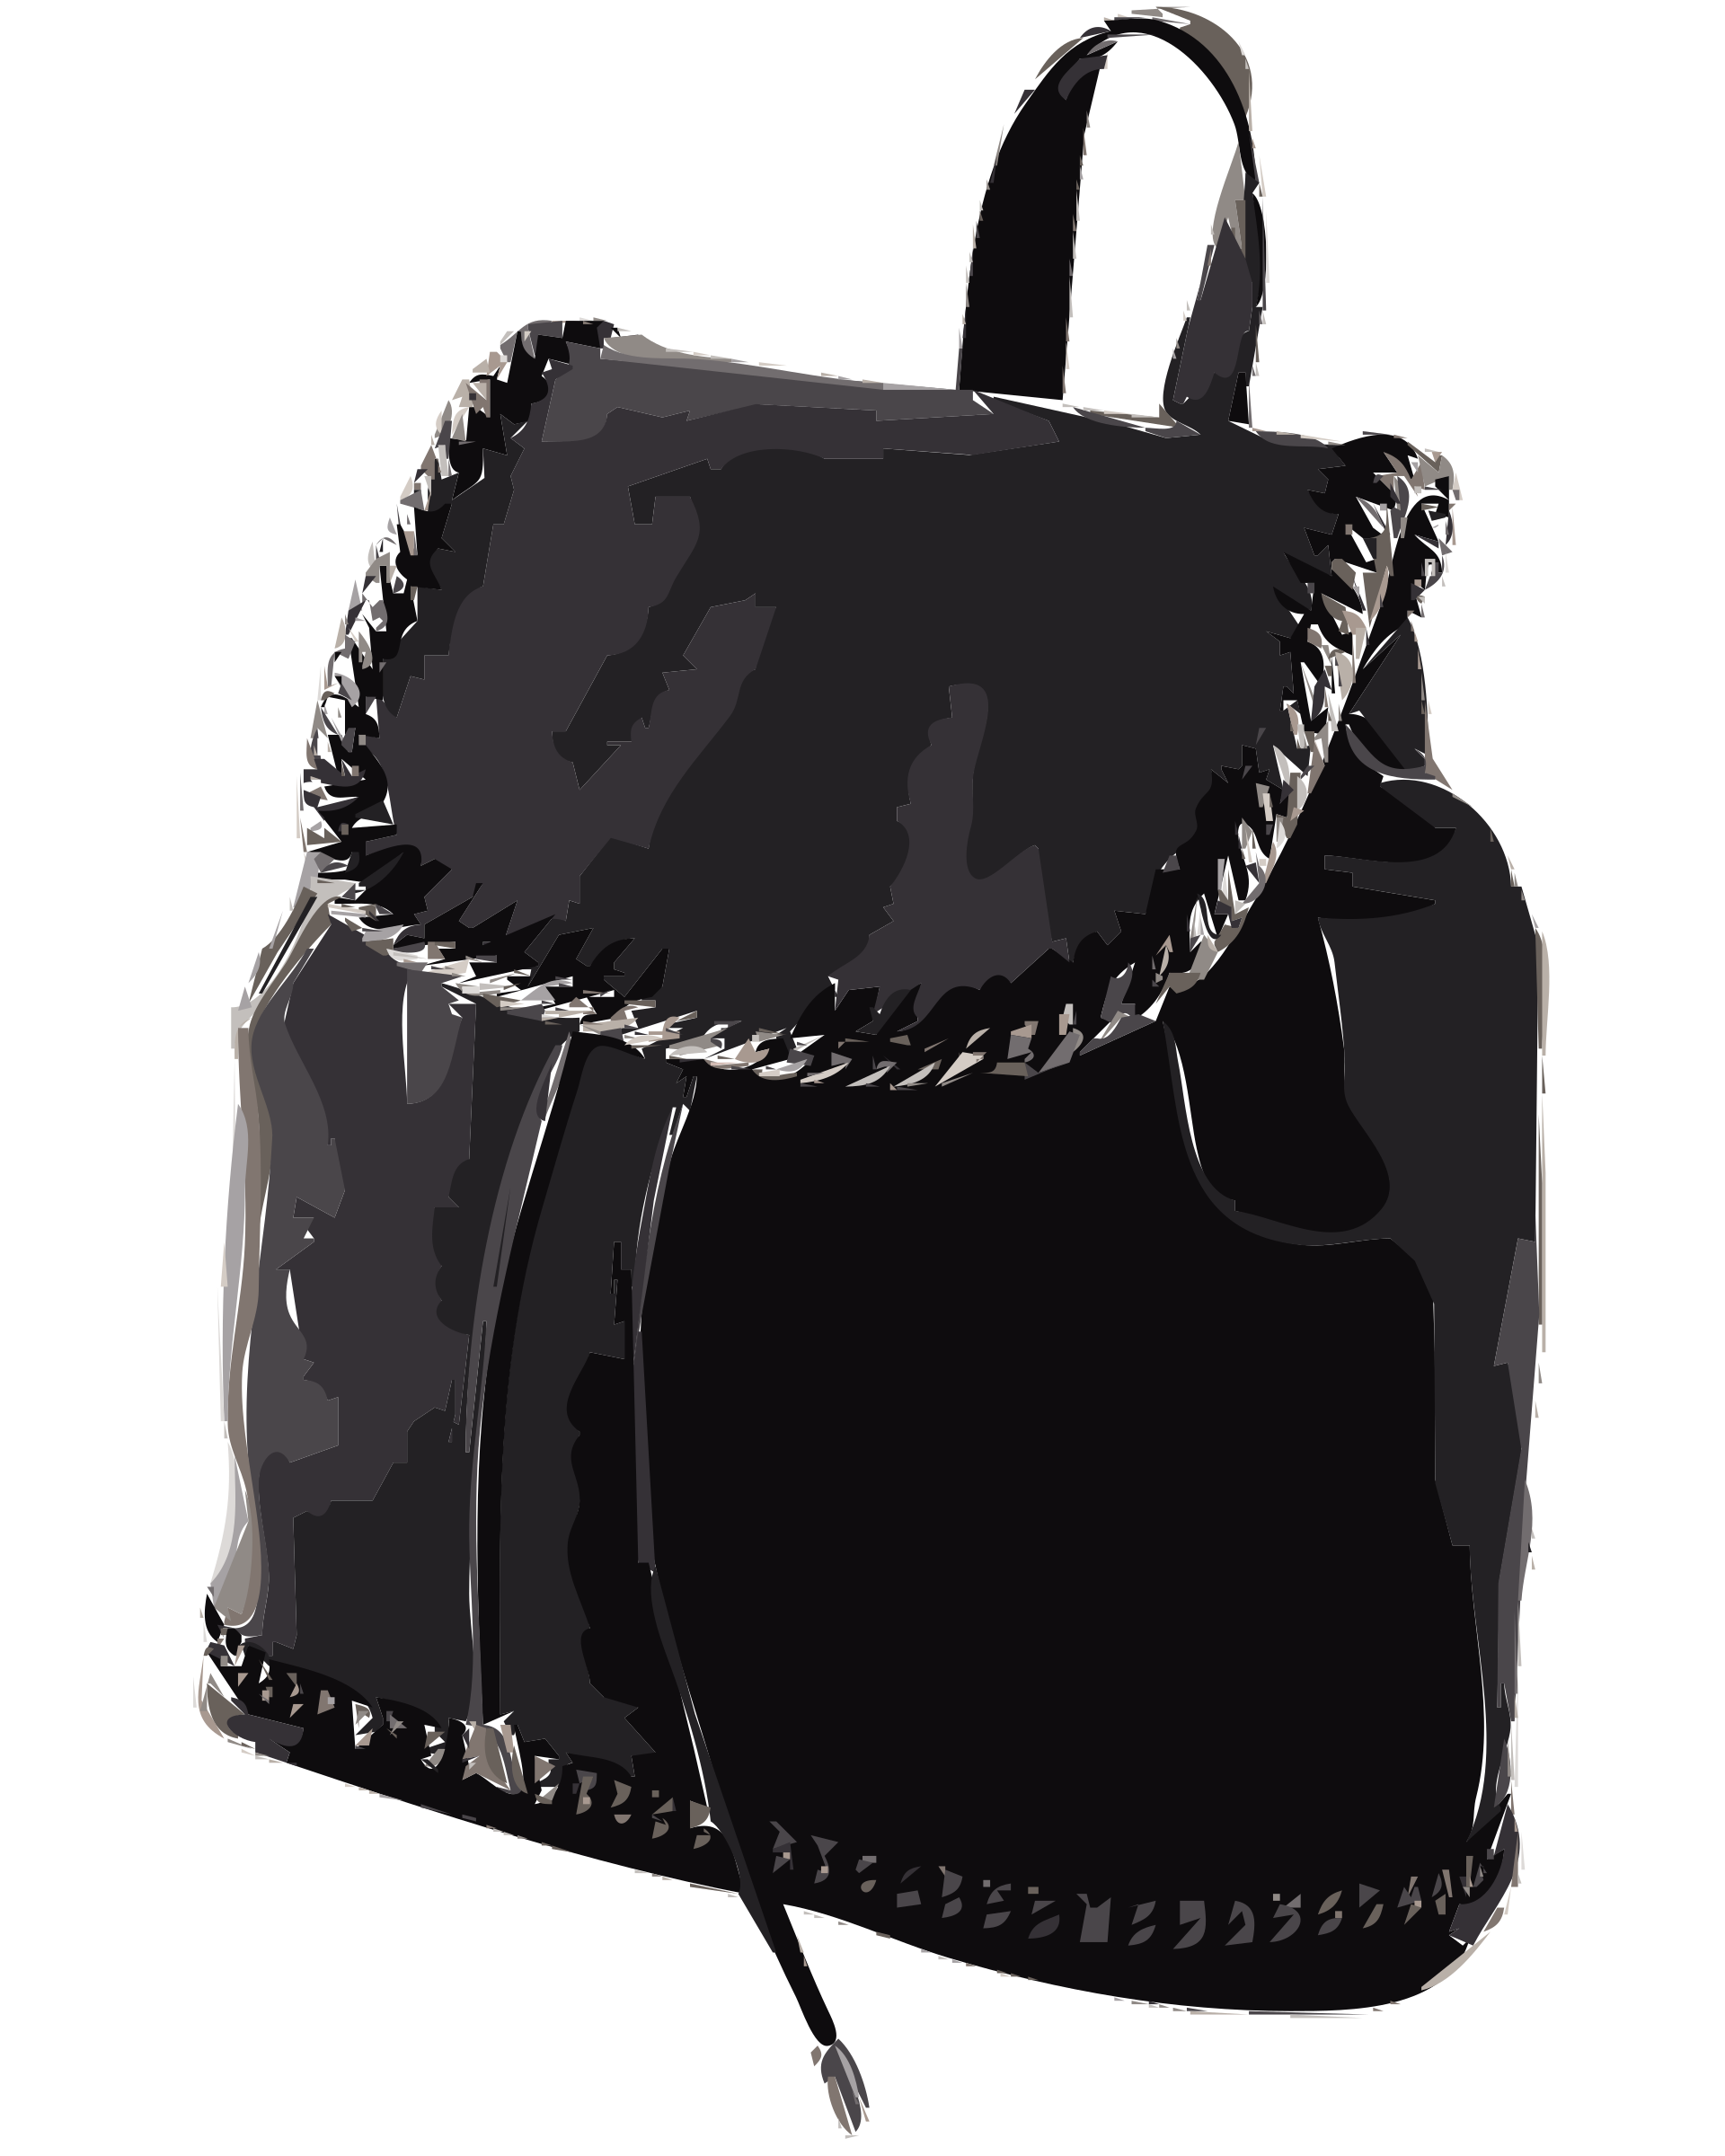 Black leather without logo. Clipart backpack blank